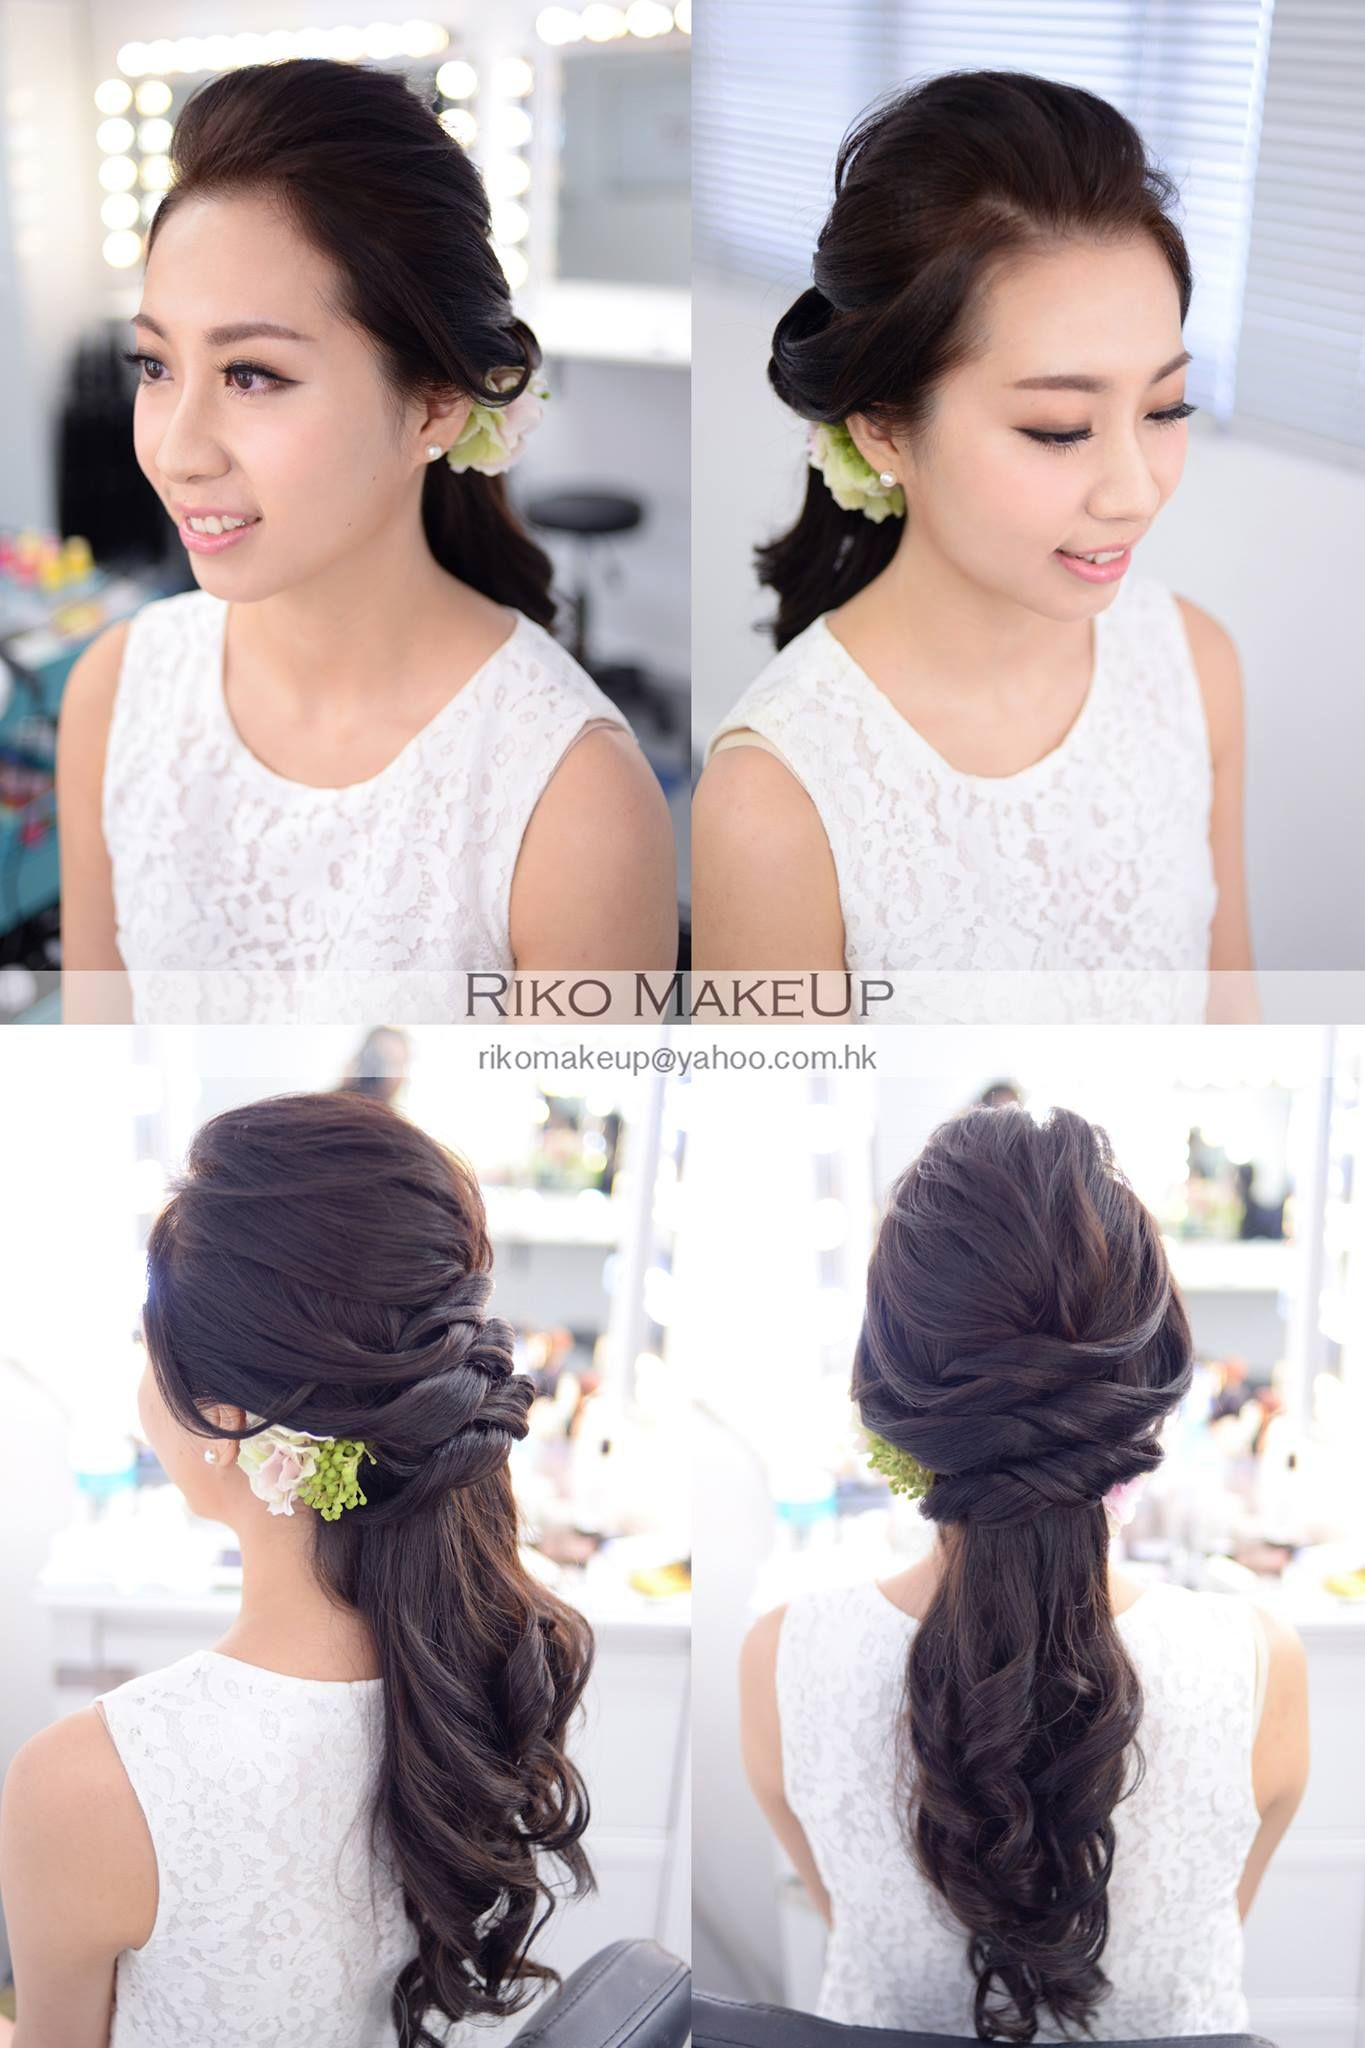 Braids, up-do, bun, Asian, wedding, hair | Hair | Pinterest | Asian ...